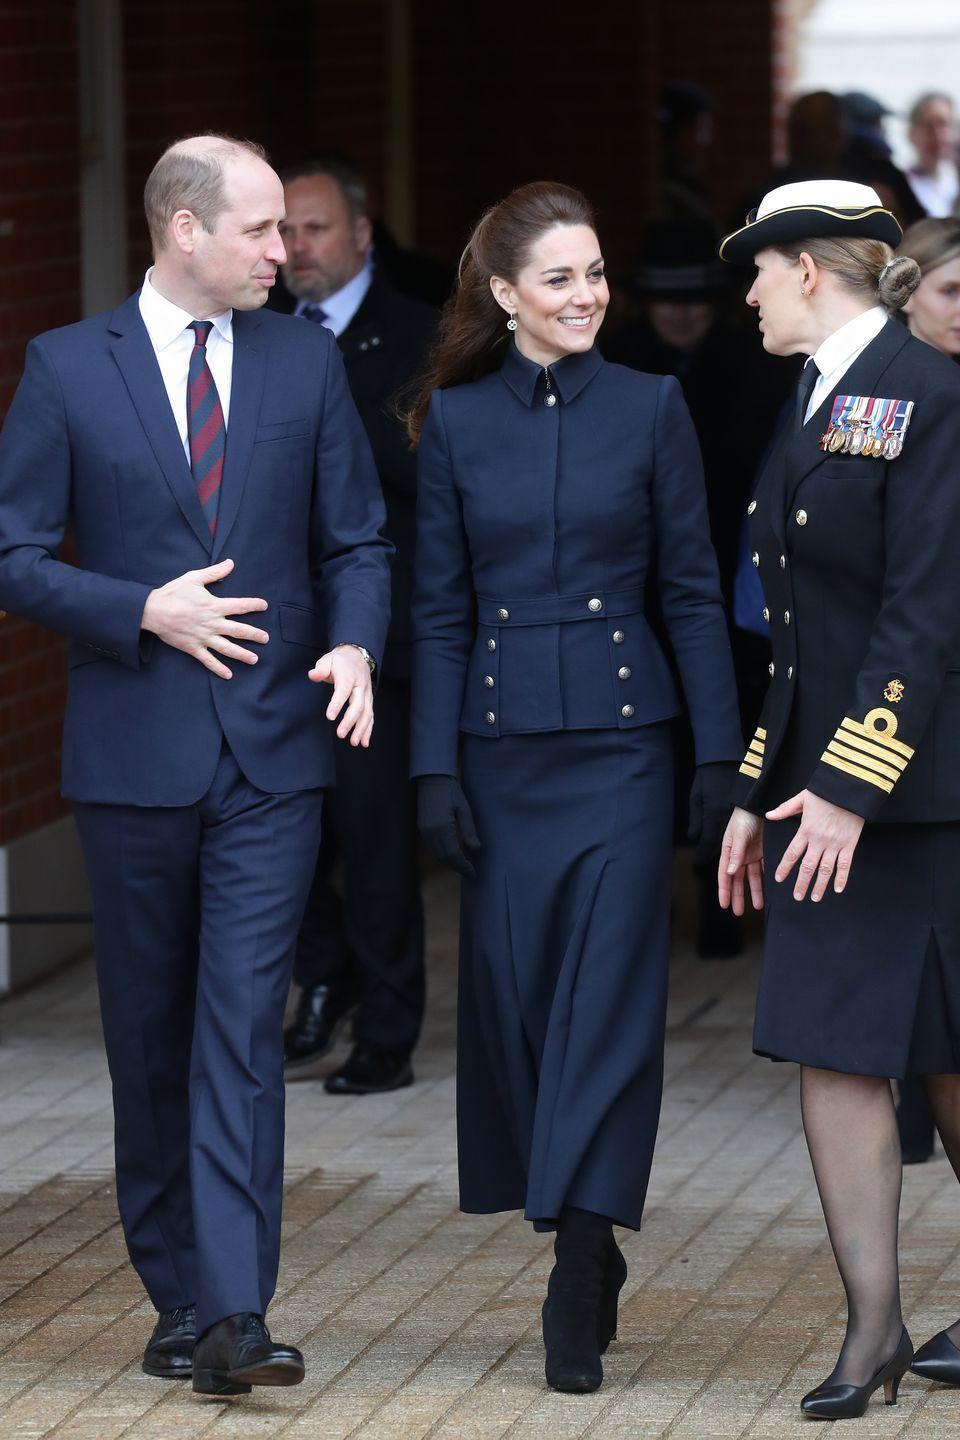 "<p>Kate and Prince William accompanied Prince Charles and Camilla on <a href=""https://www.townandcountrymag.com/society/tradition/a30859150/kate-middleton-prince-william-charles-camilla-rare-appearance-military-rehab-leicester/"" rel=""nofollow noopener"" target=""_blank"" data-ylk=""slk:a visit to Leicestershire"" class=""link rapid-noclick-resp"">a visit to Leicestershire</a>, where they toured a rehabilitation center for members of the armed forces. The Duchess chose a military-inspired, navy blue <a href=""https://www.townandcountrymag.com/society/tradition/a30859254/kate-middleton-mcqueen-military-coat-leicestershire-photos/"" rel=""nofollow noopener"" target=""_blank"" data-ylk=""slk:Alexander McQueen jacket and skirt"" class=""link rapid-noclick-resp"">Alexander McQueen jacket and skirt</a> for the occasion. She completed the look with black heeled boots, black gloves, and drop earrings. </p>"